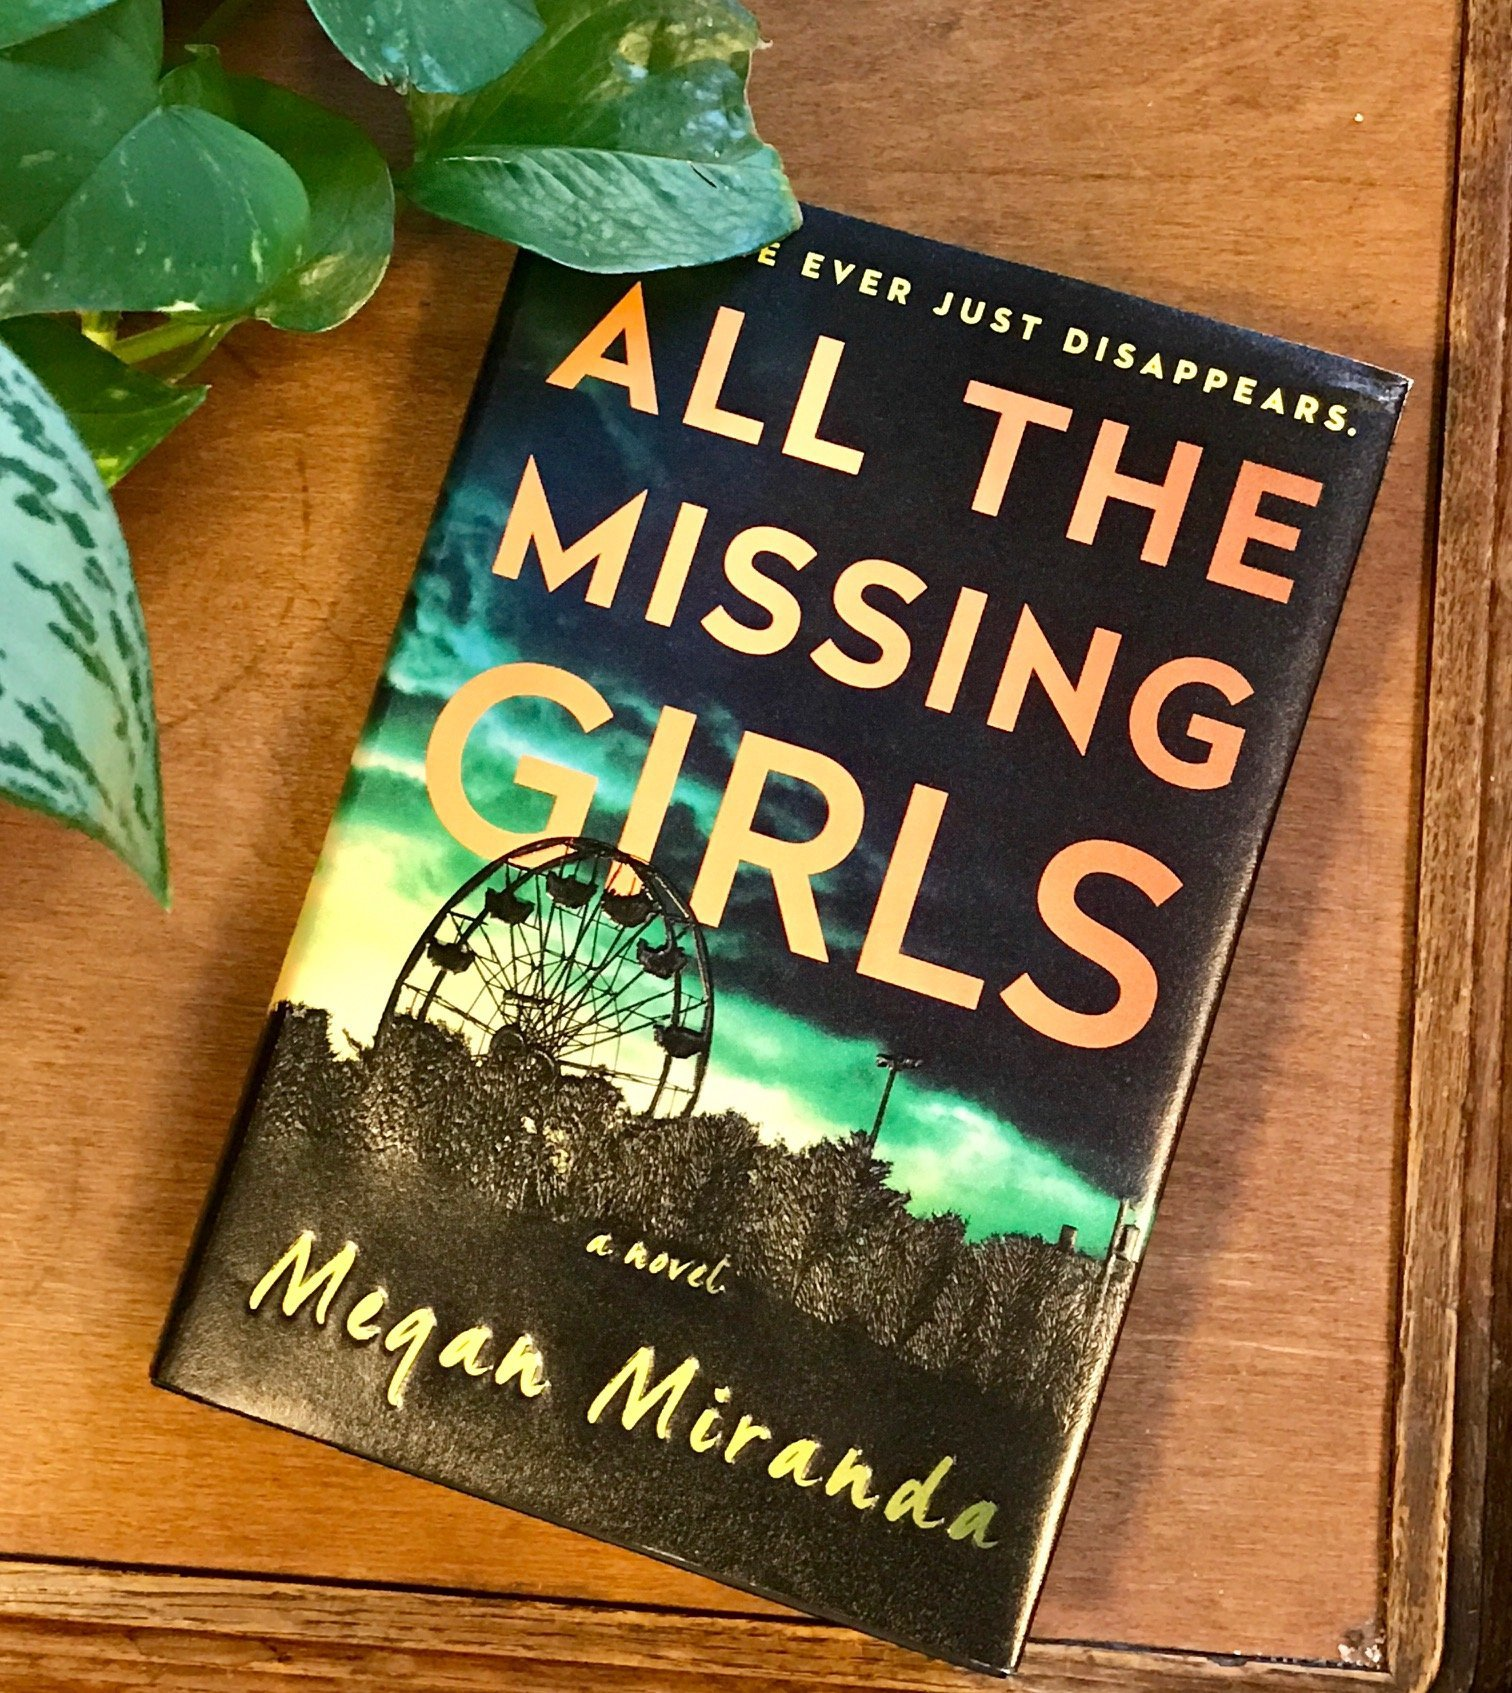 Books We Love - The B Hive Book Club - All the Missing Girls